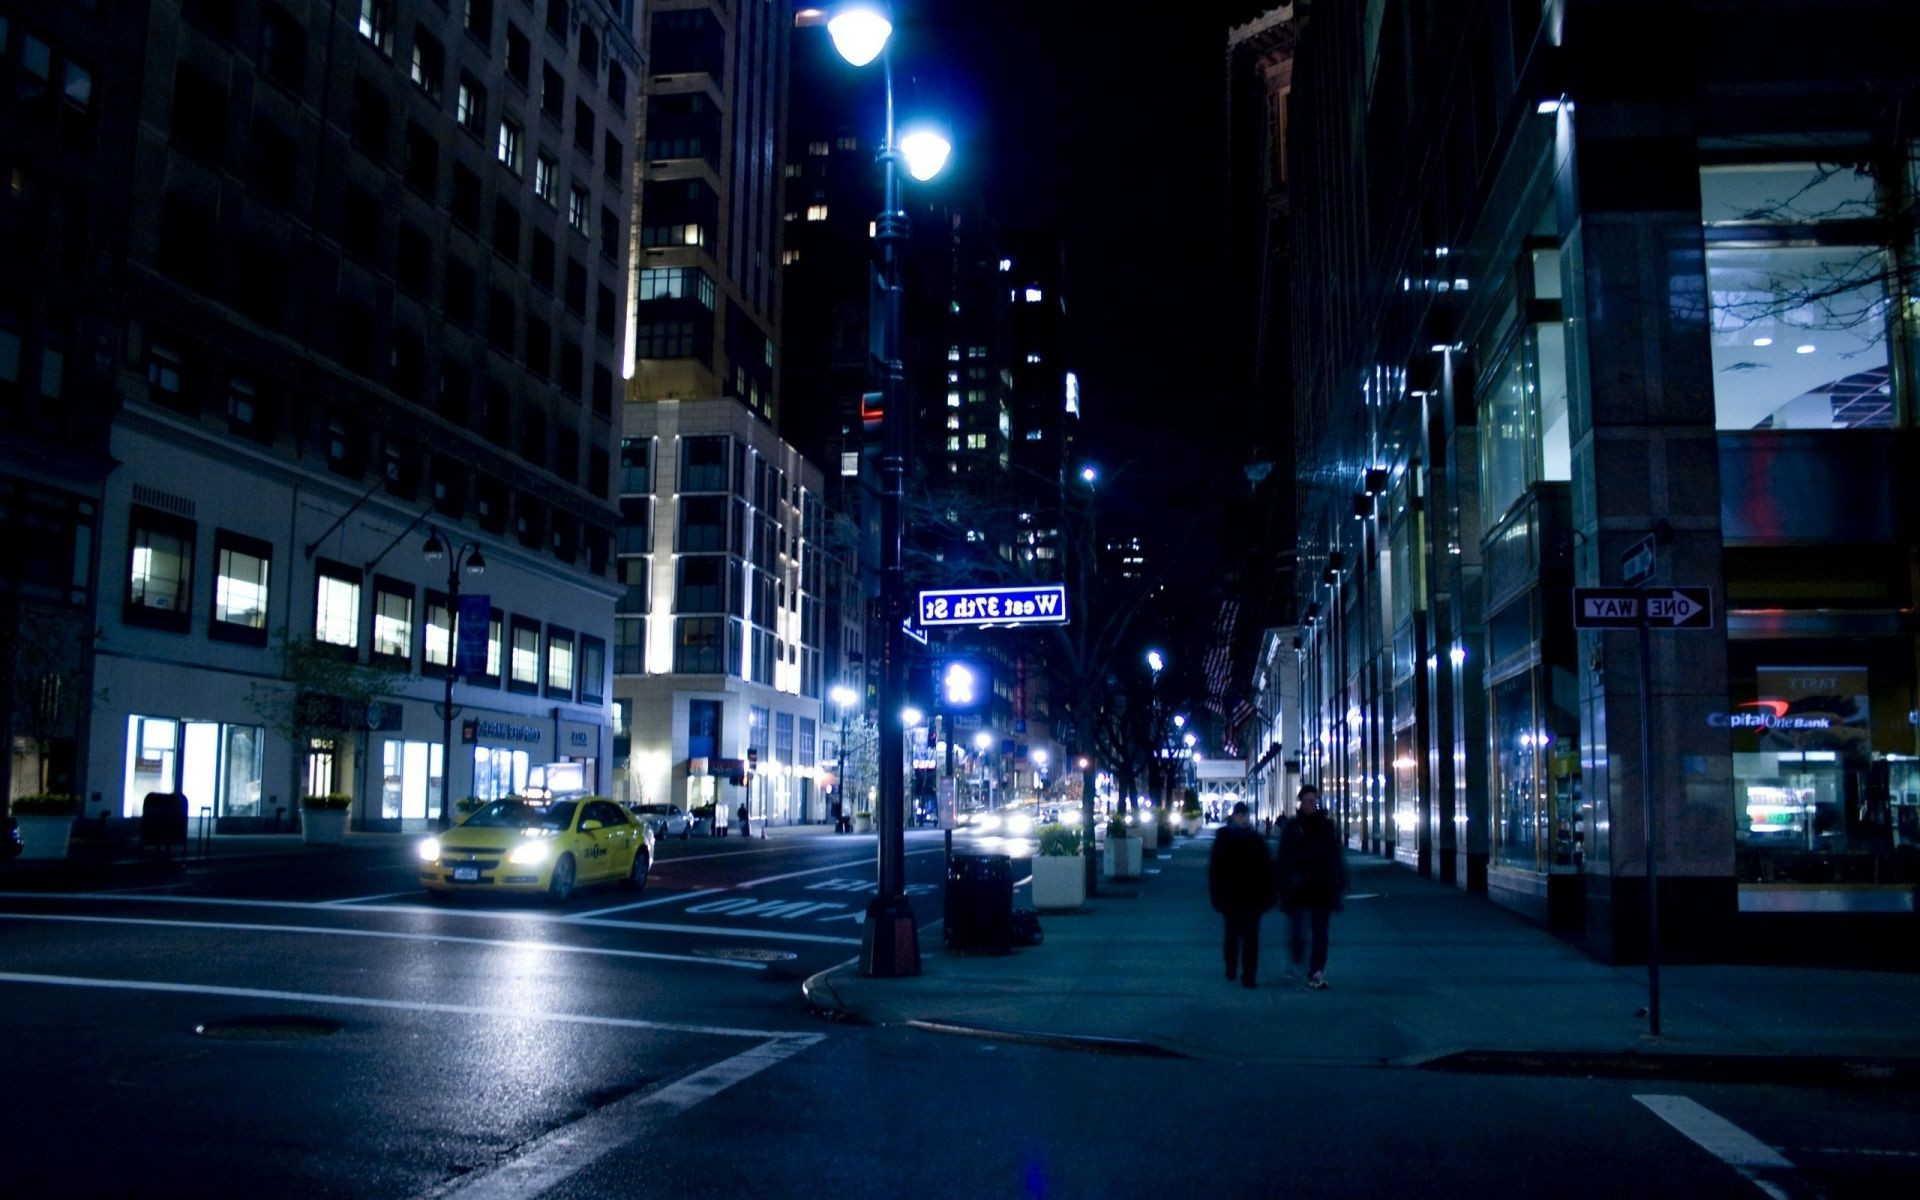 нью-йорк nyc ночь улица night New york city